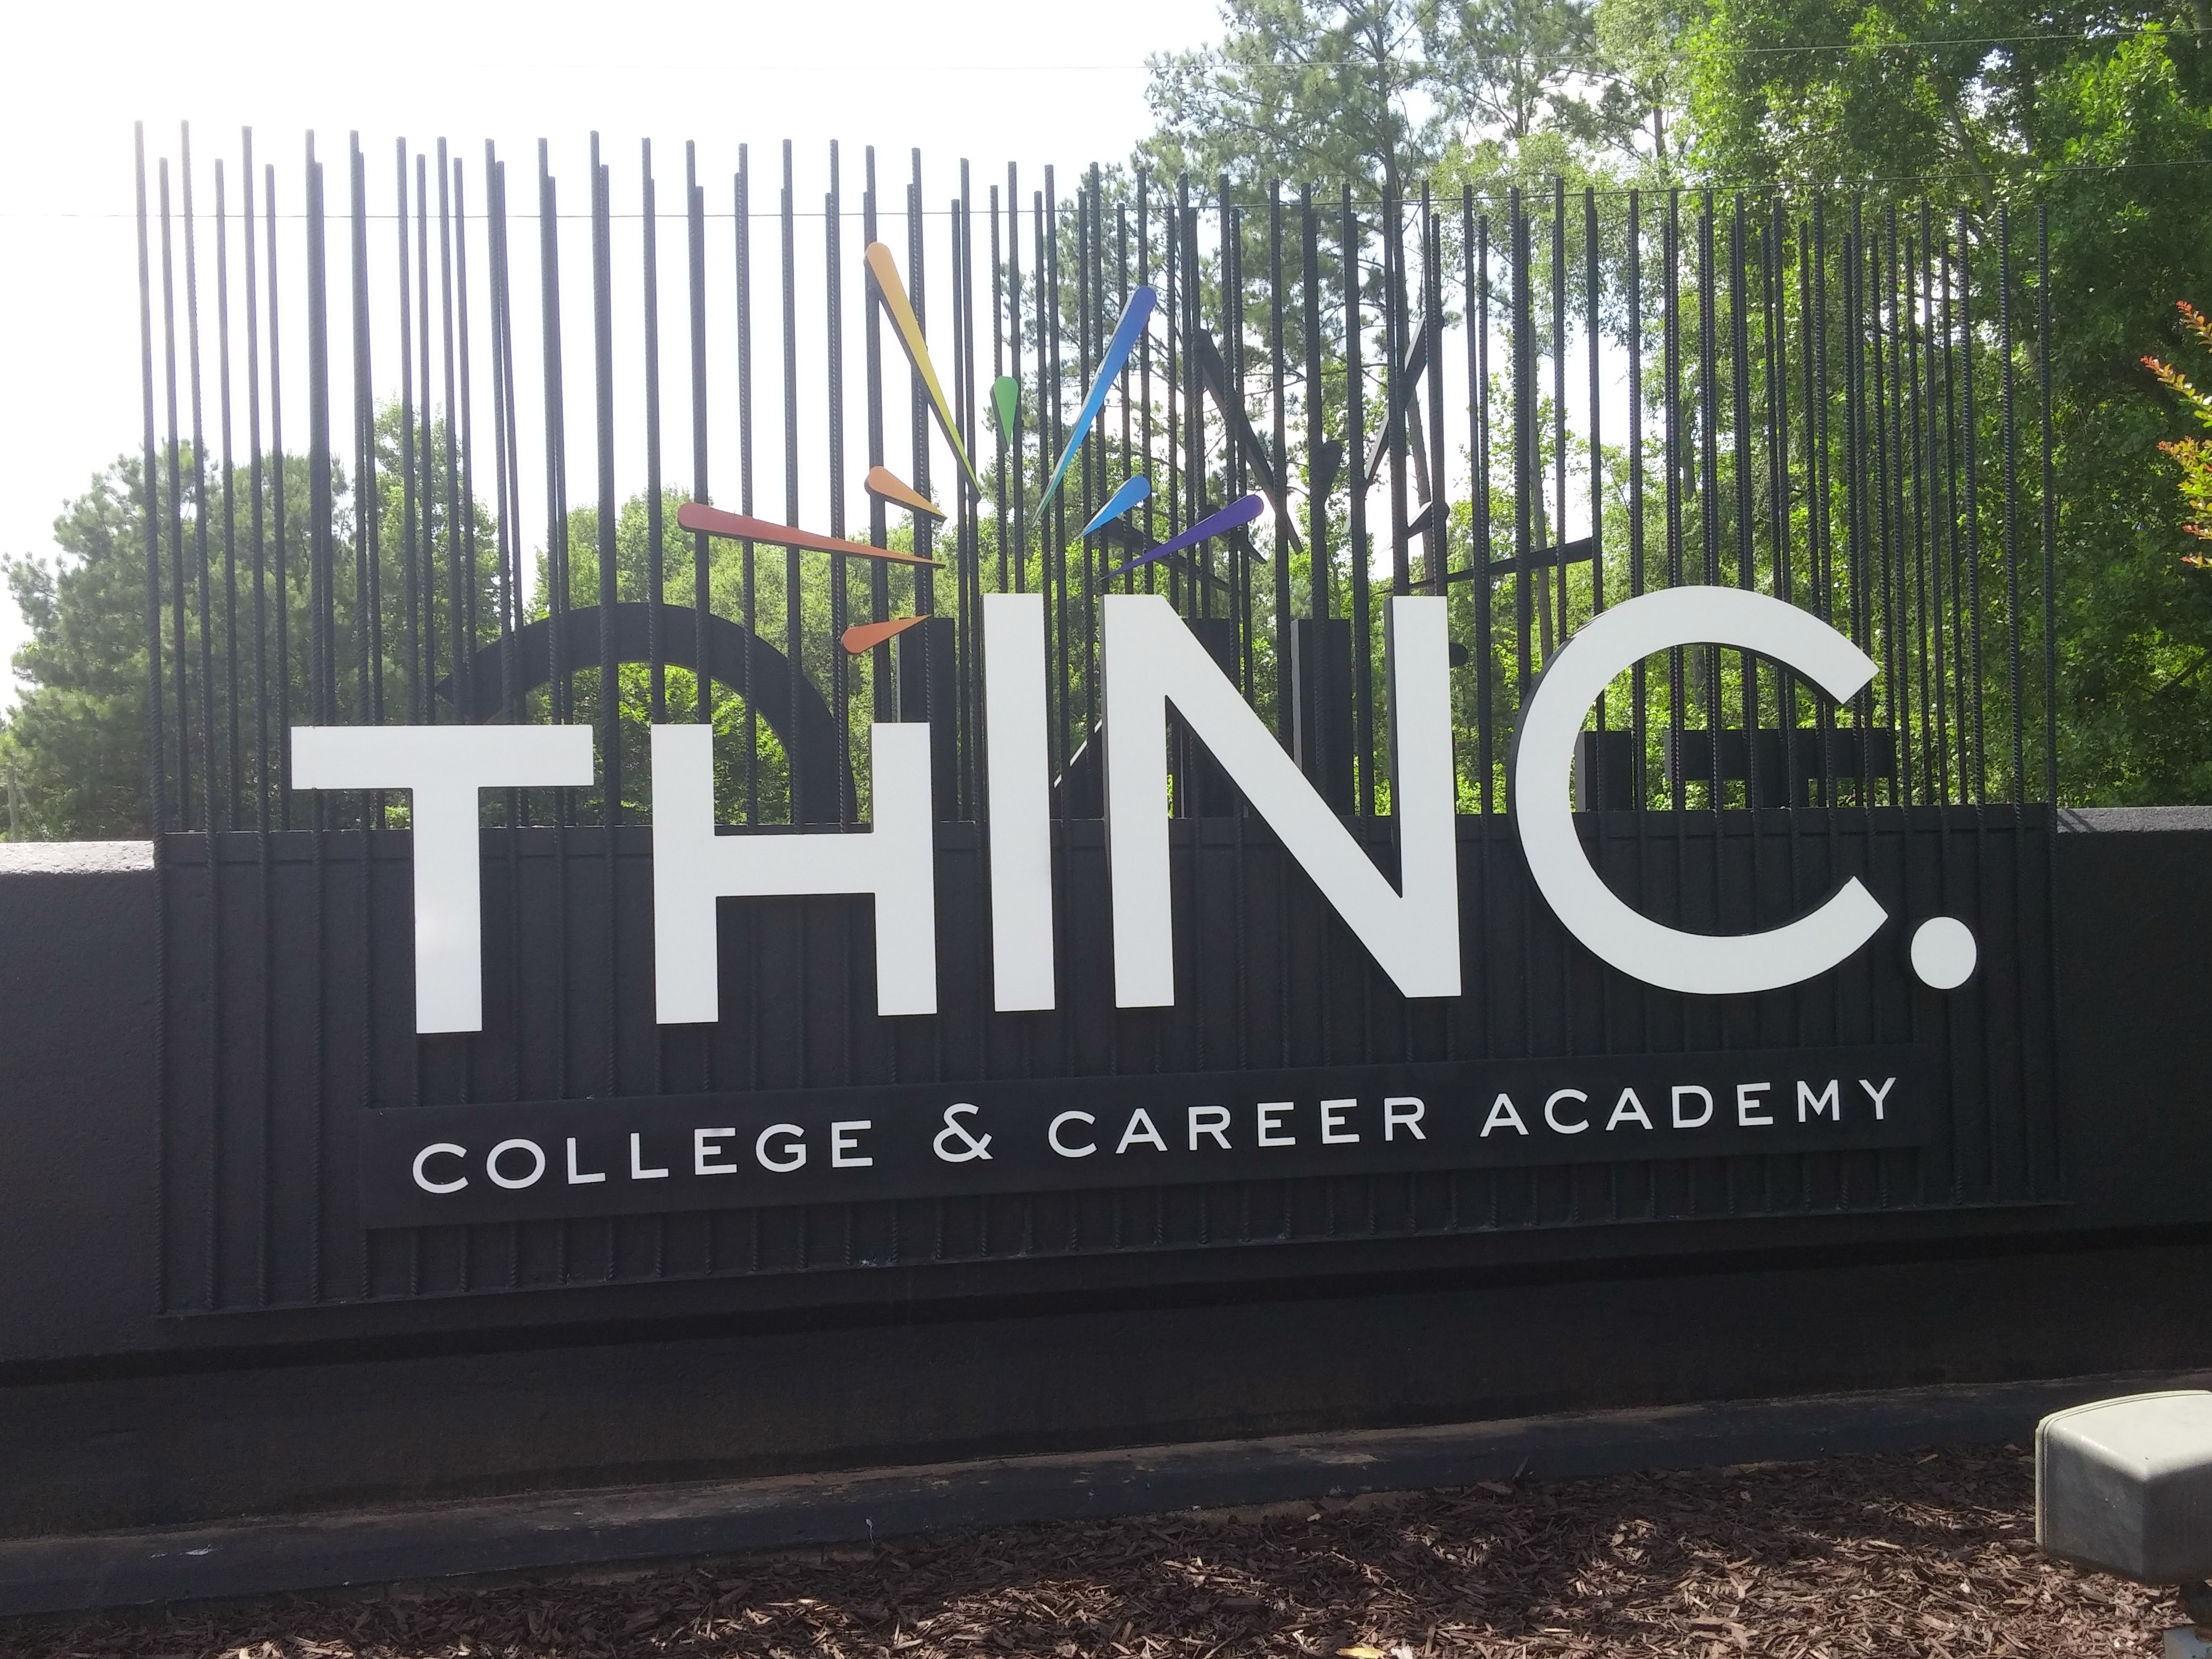 THINC front driveway sign